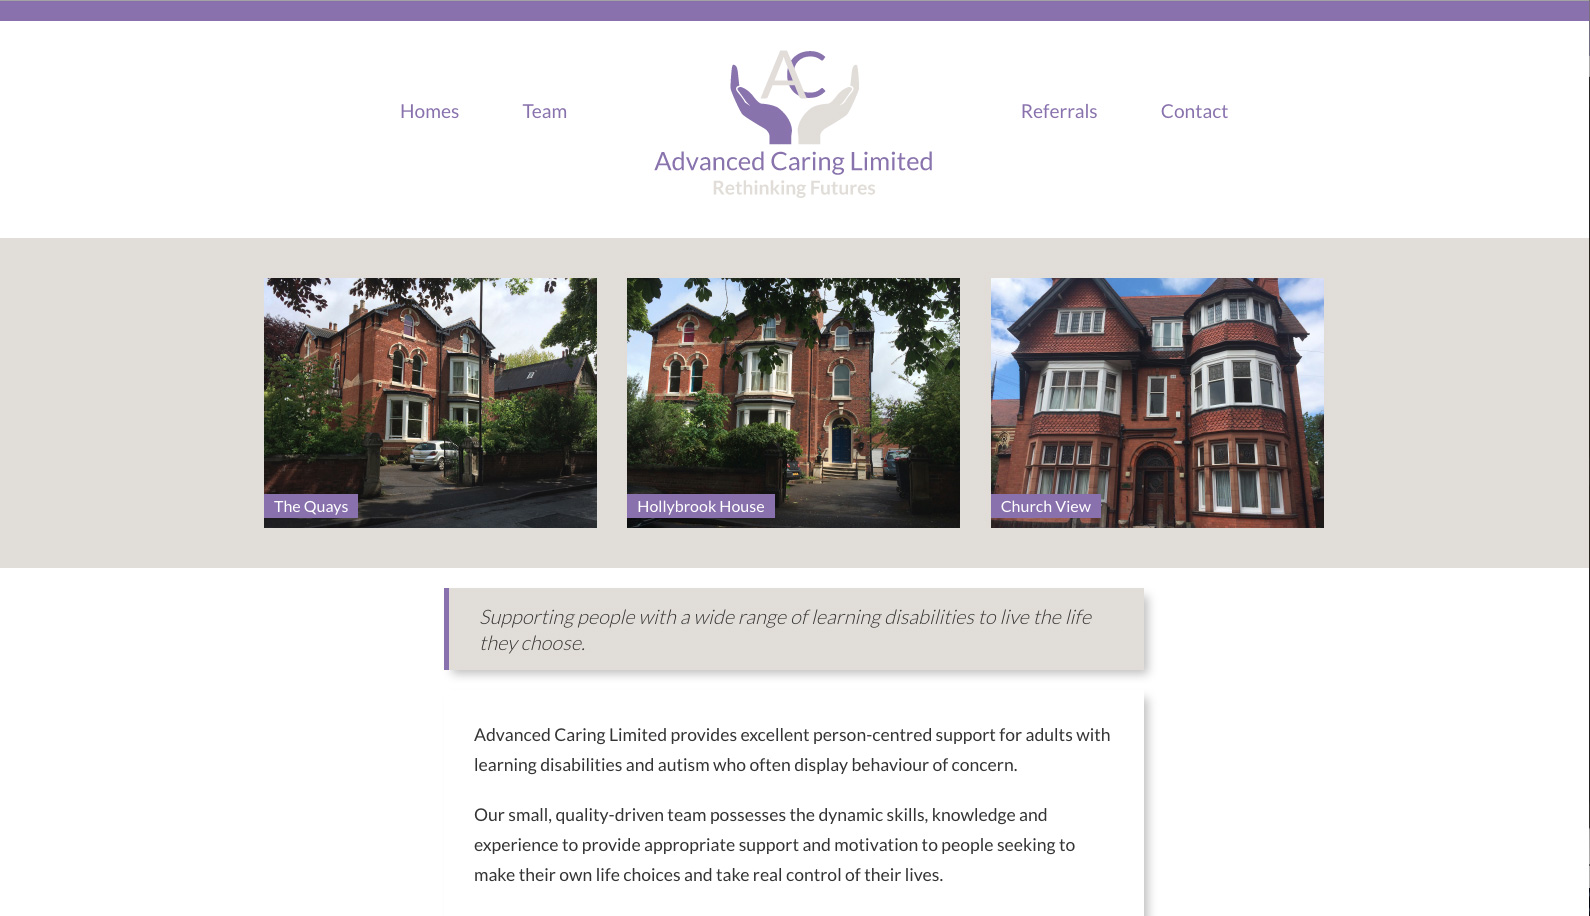 Advanced Caring Limited